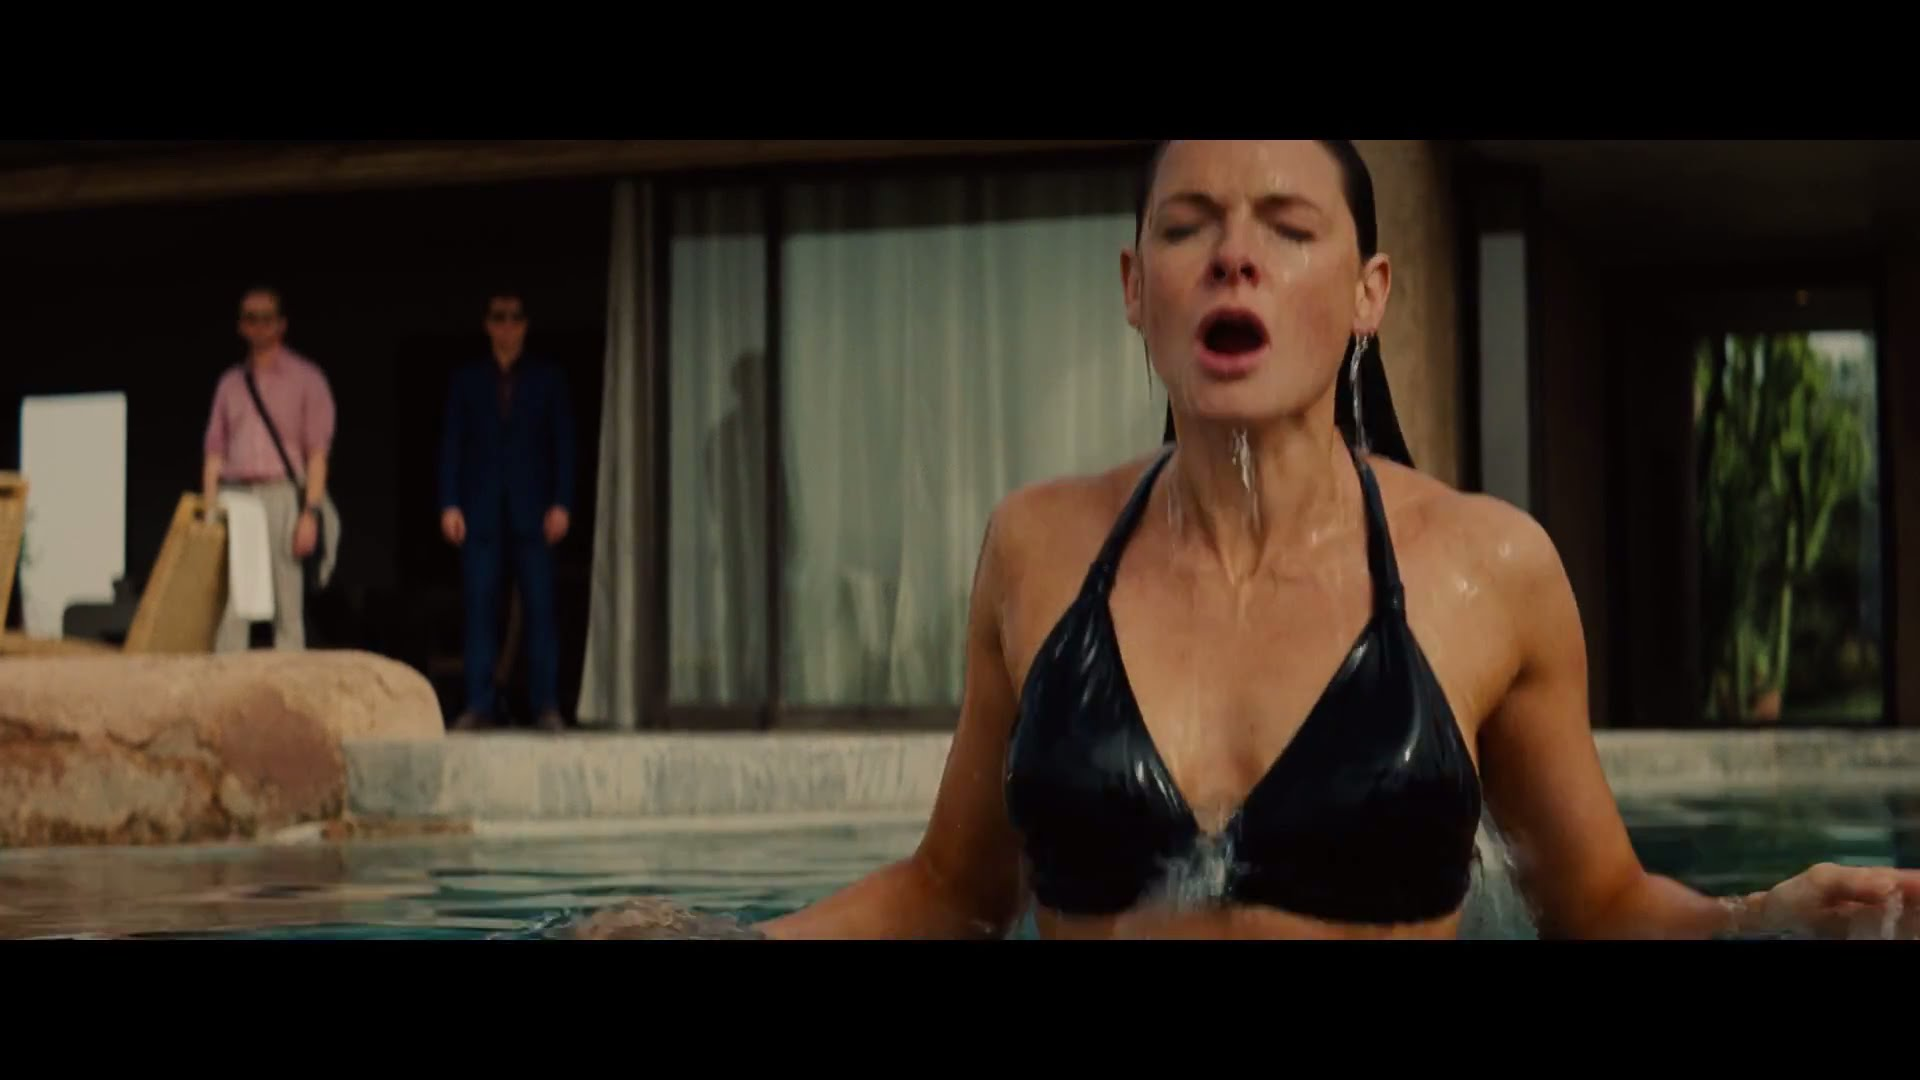 Mission Impossible Rogue Nation, Official Trailer, Tom Cruise, Simon Pegg Spy